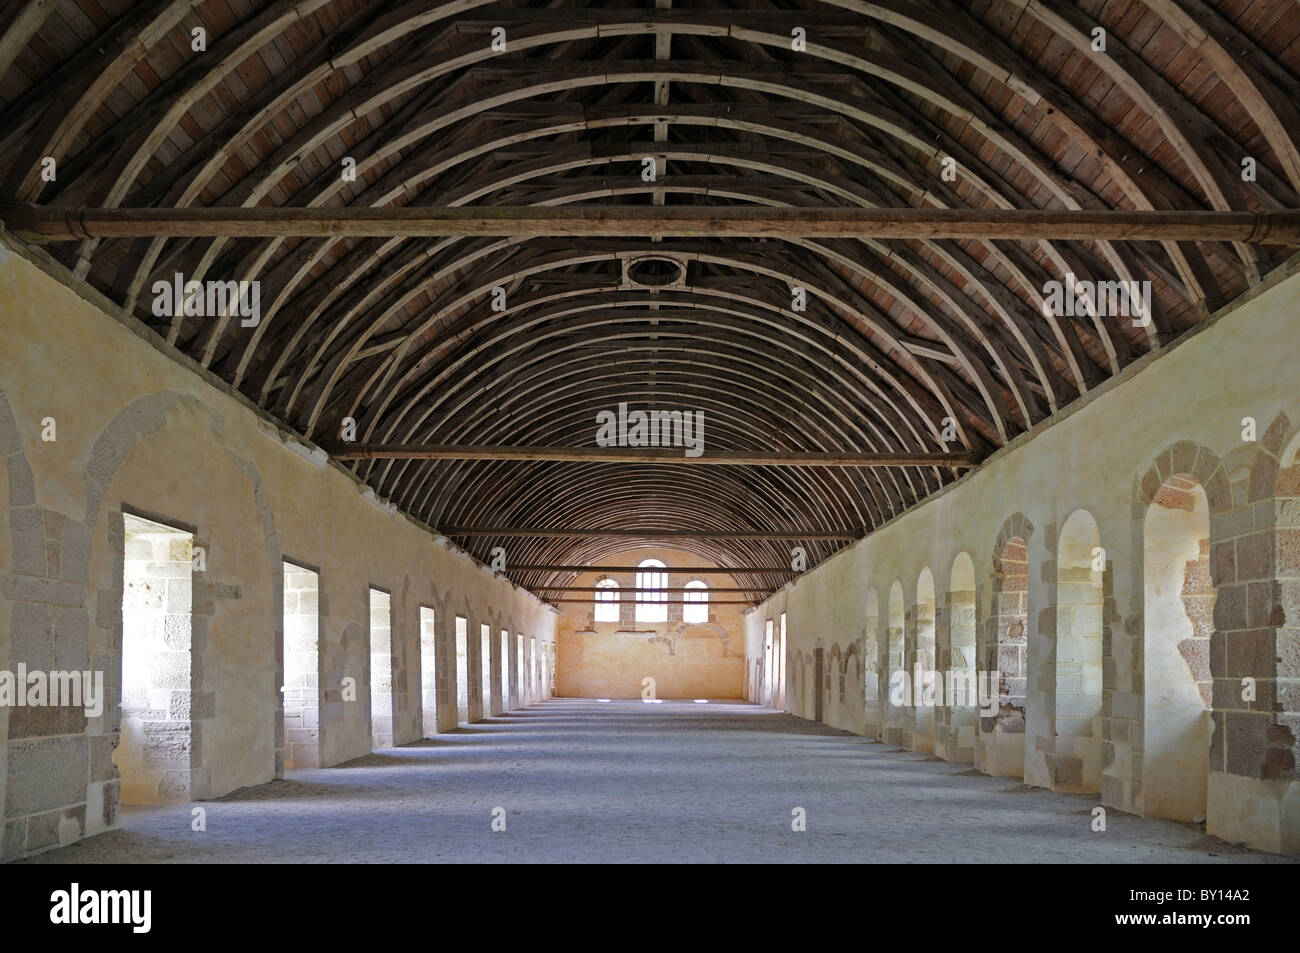 Interior of Dormitory showing barrel roof with ancient wooden beams in the Abbaye de Fontenay Burgundy France - Stock Image